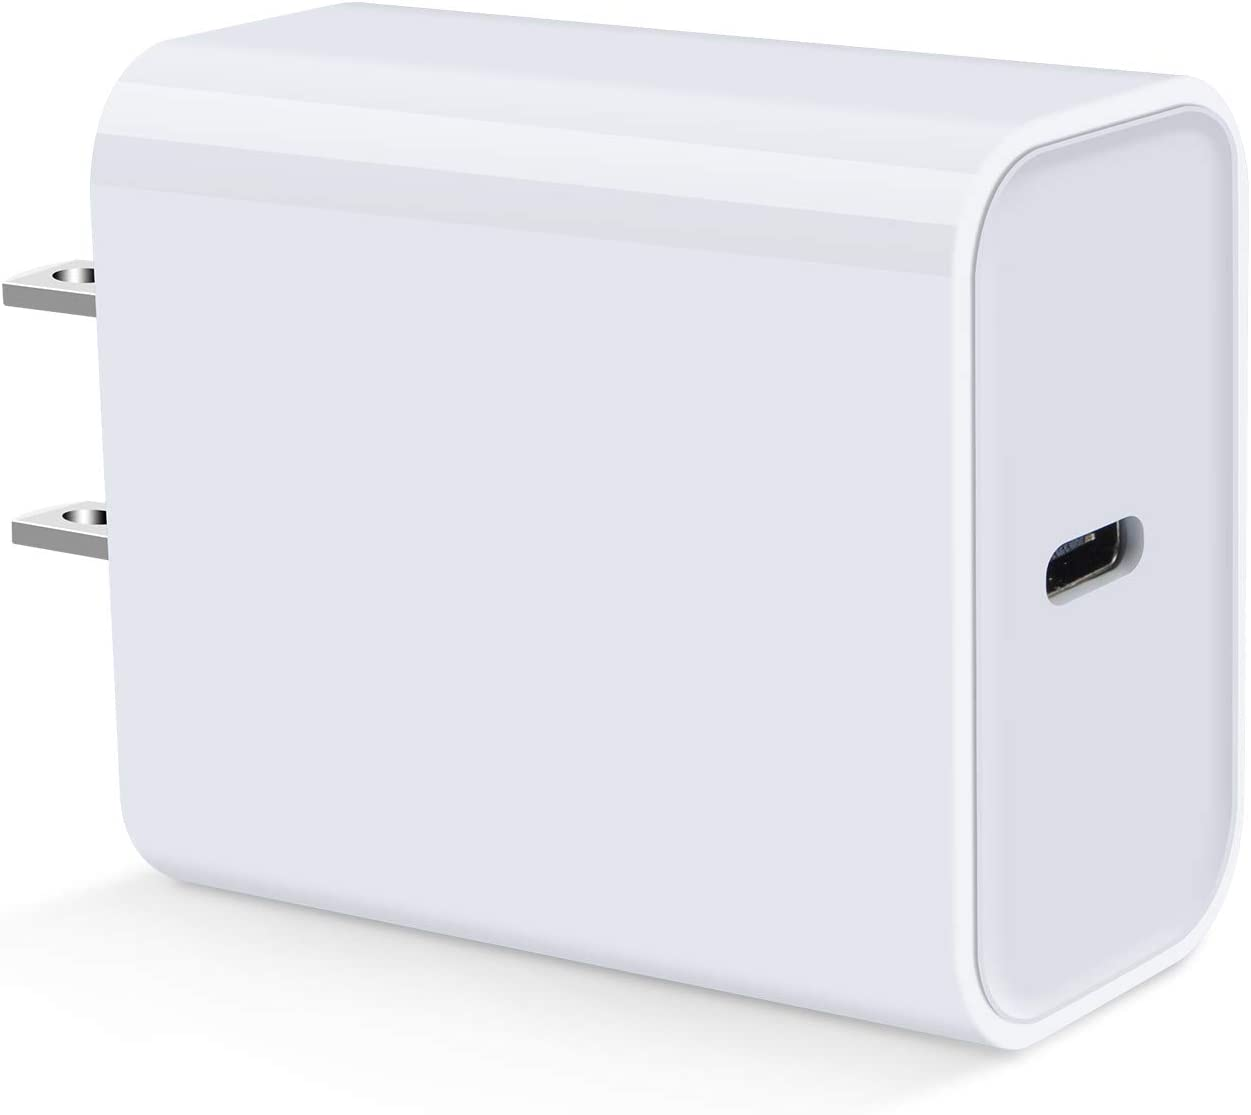 Fast USB C Wall Charger,18W PD Power Adapter Charging Block Compatible with iPhone 12 11 Pro/Pro Max,SE/X/XS,iPad Pro,Samsung Galaxy S20 S10 S9 A01 A11 A21 A51 A71 A20 A50 Note 20,Pixel 5 4a 3a 2 XL